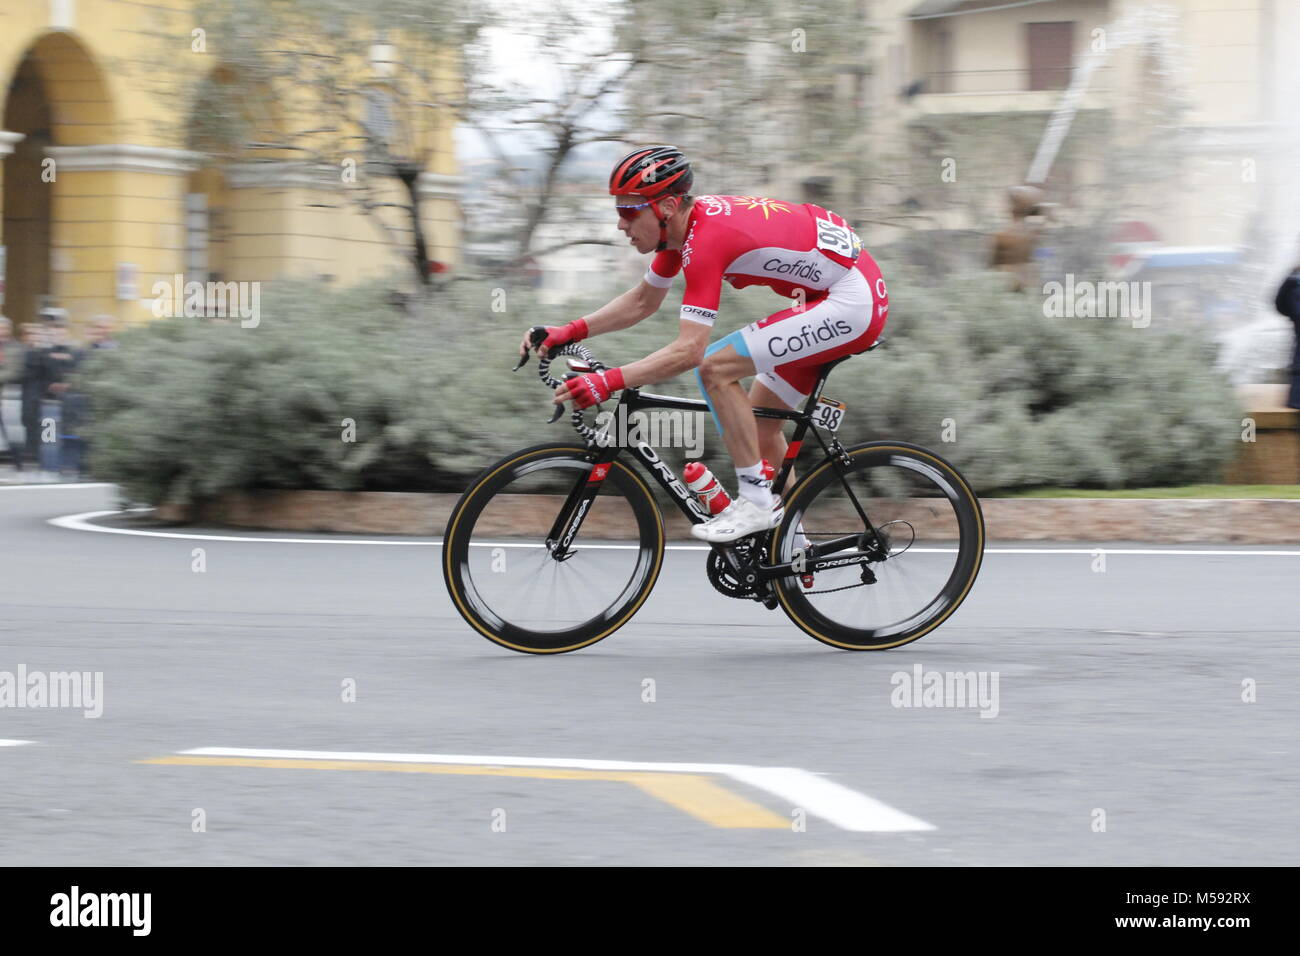 Professional Cyclists Stock Photos & Professional Cyclists ...